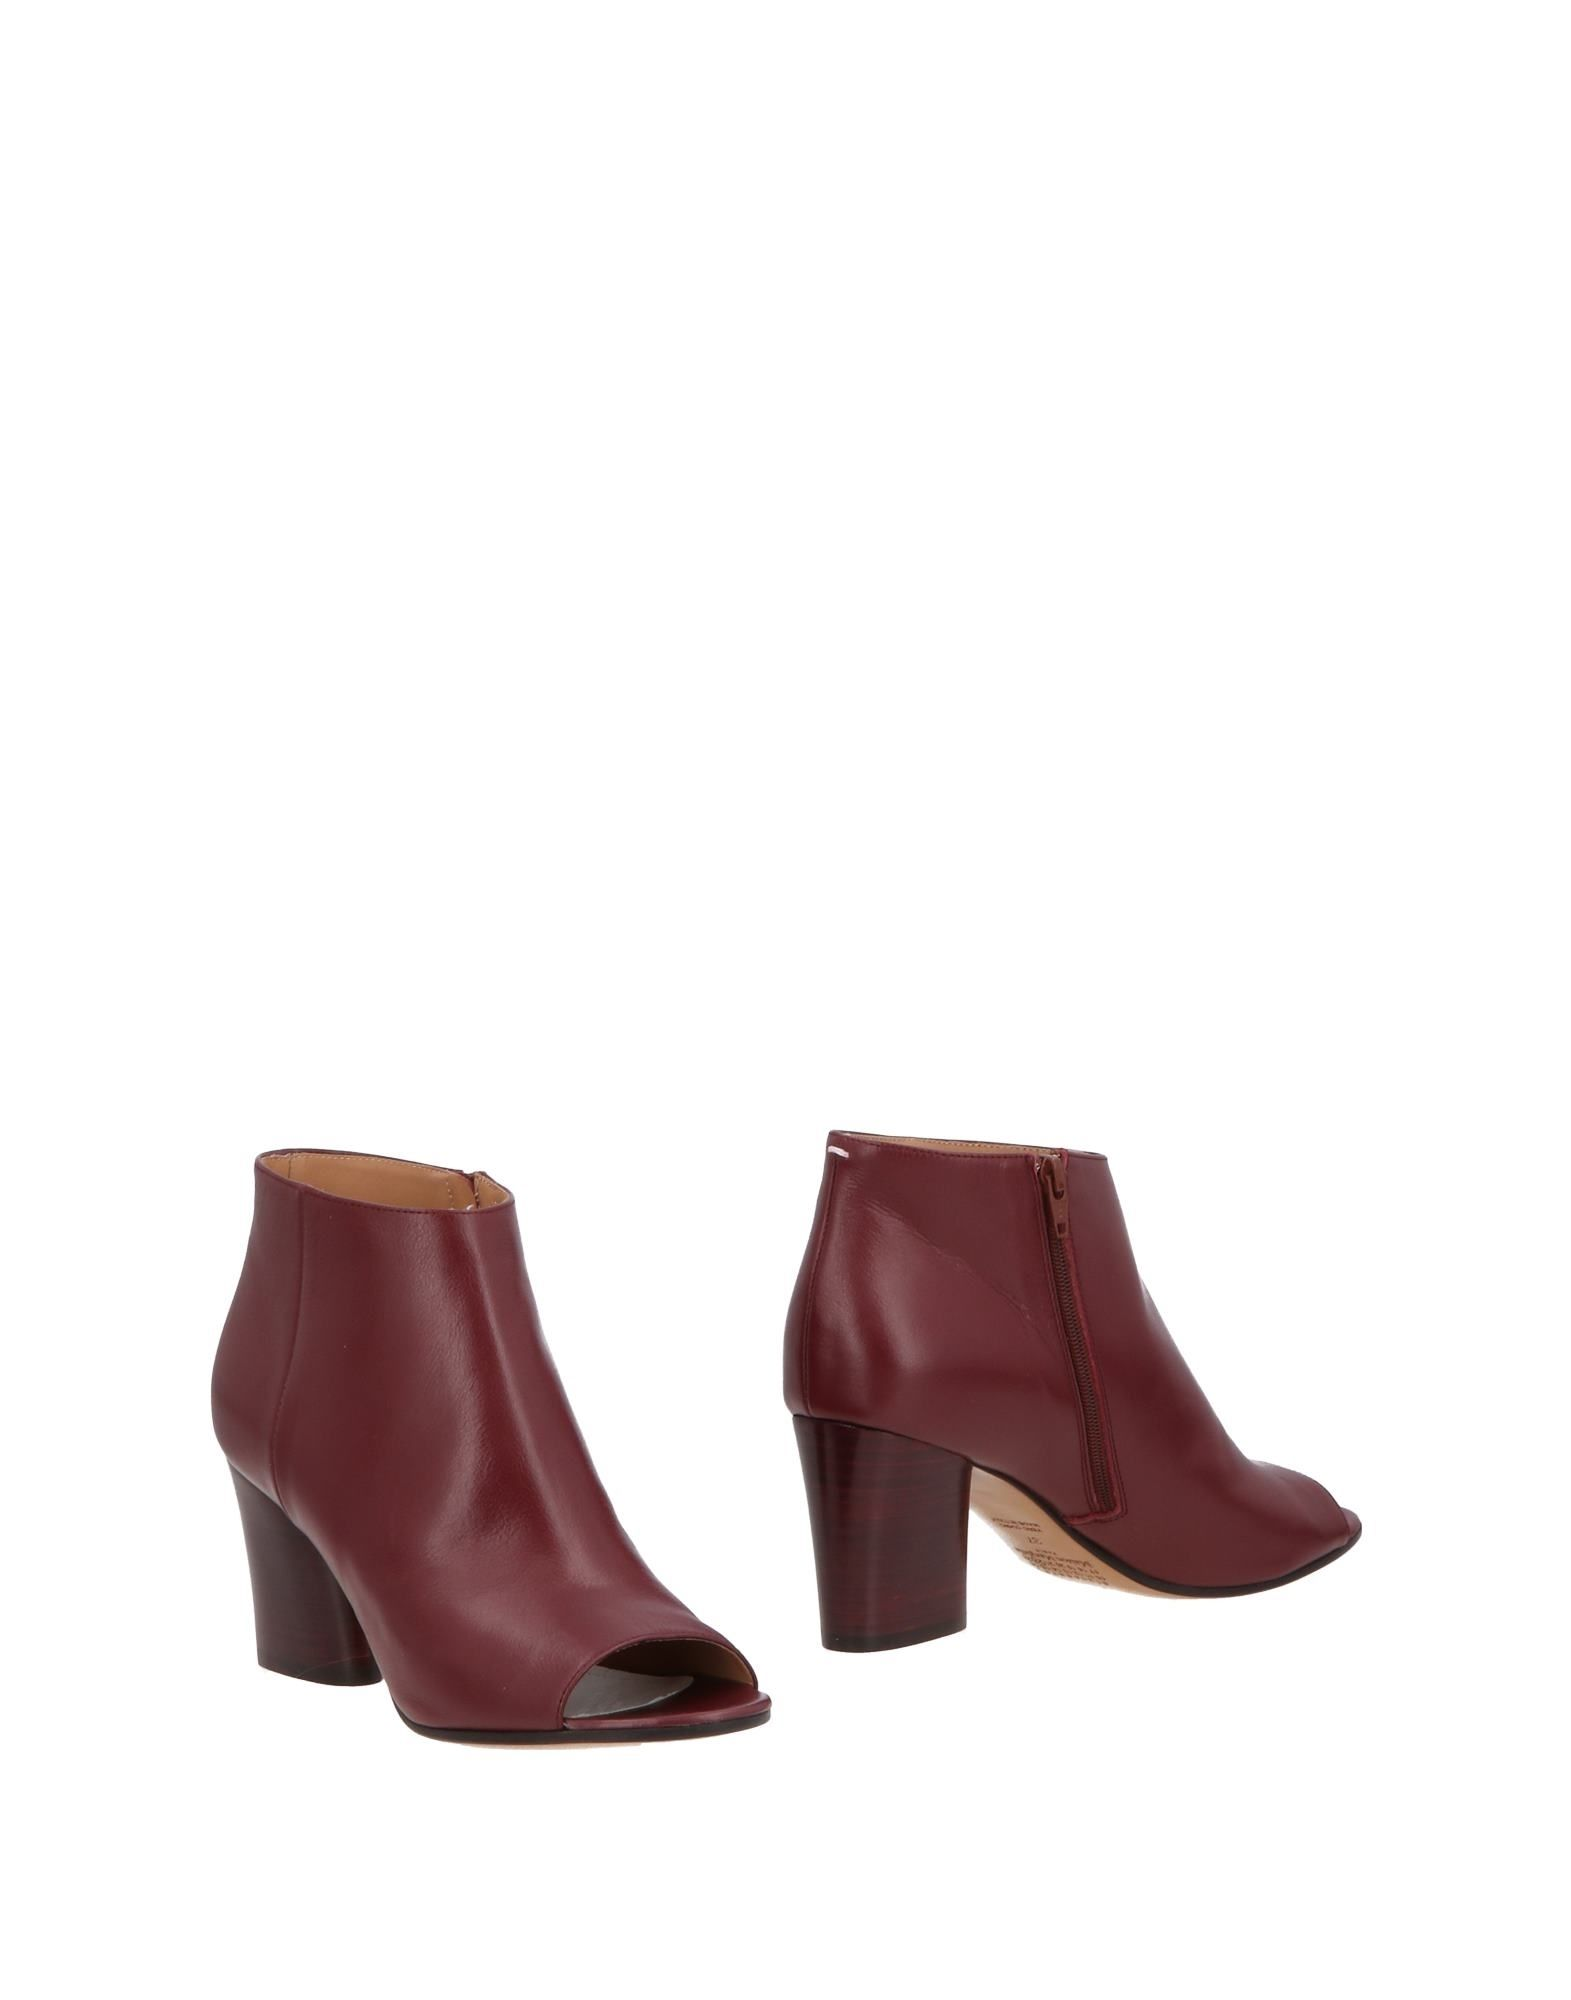 Bottine Maison Margiela Femme - Bottines Maison Margiela Bordeaux Chaussures casual sauvages